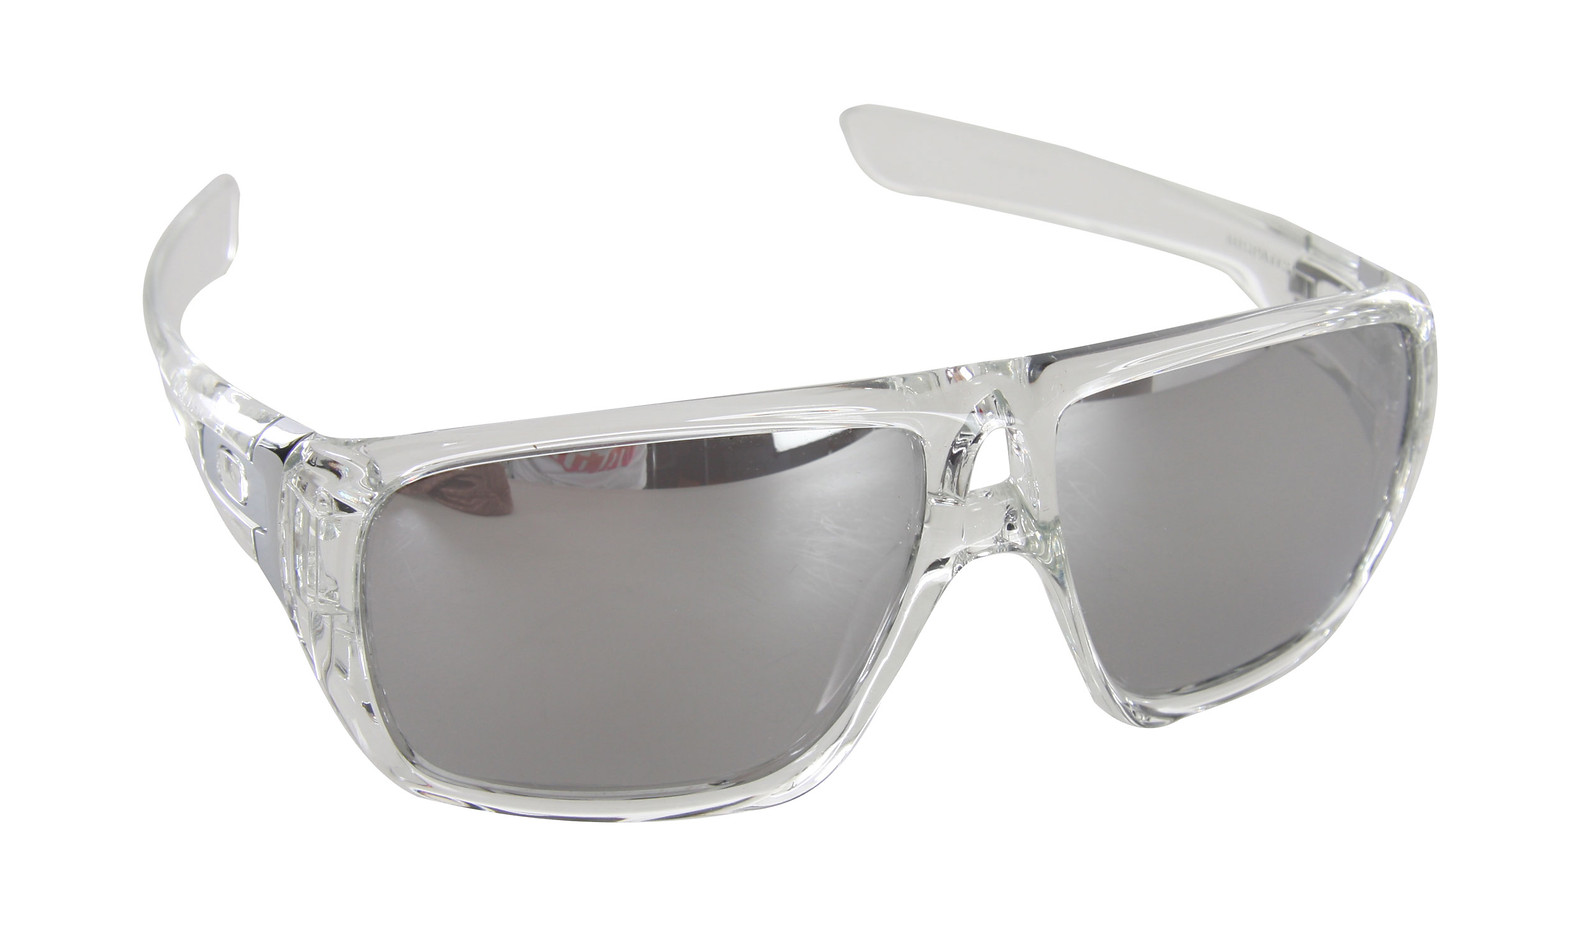 929c3278d1 best price oakley dispatch oo9090 01 sunglasses shade station 91381 b4666   amazon oakley dispatch sngls clearchrome 10 a7c3d 116c6